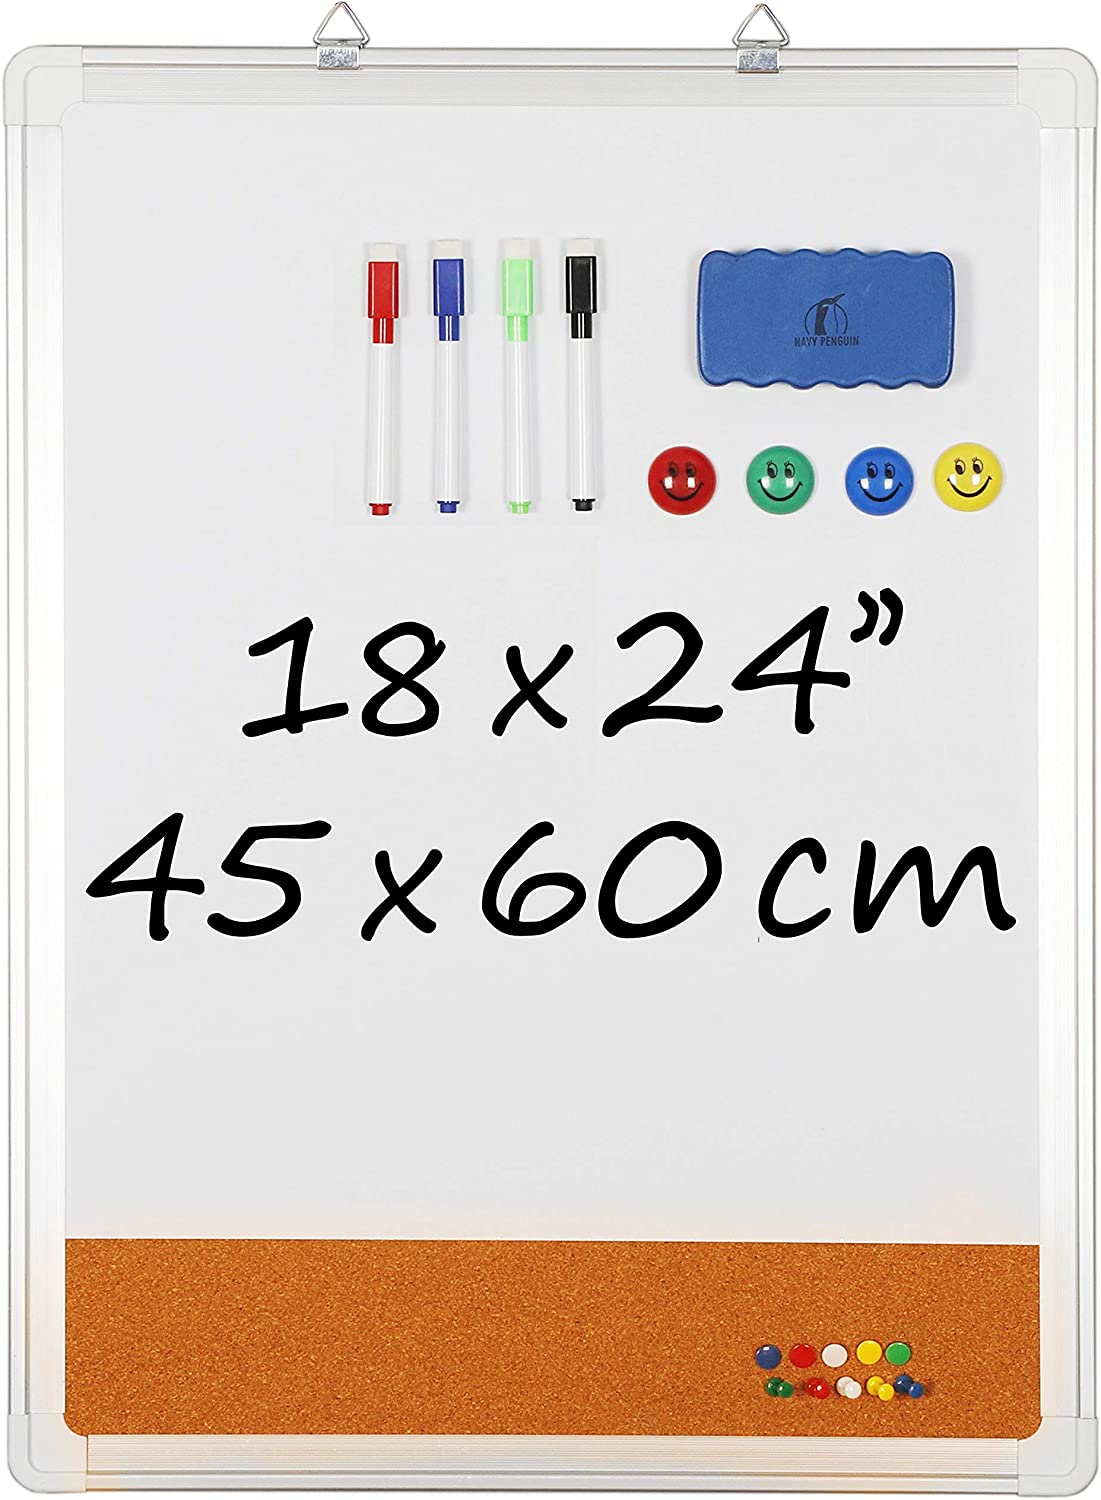 """Whiteboard Bulletin Board Set - 18 x 24"""" Dry Erase/Cork Board + 1 Magnetic Eraser, 4 Dry Wipe Markers, 4 Magnets and 10 Pins - Small Wall Hanging Notice White Tack Board for Home and Office"""